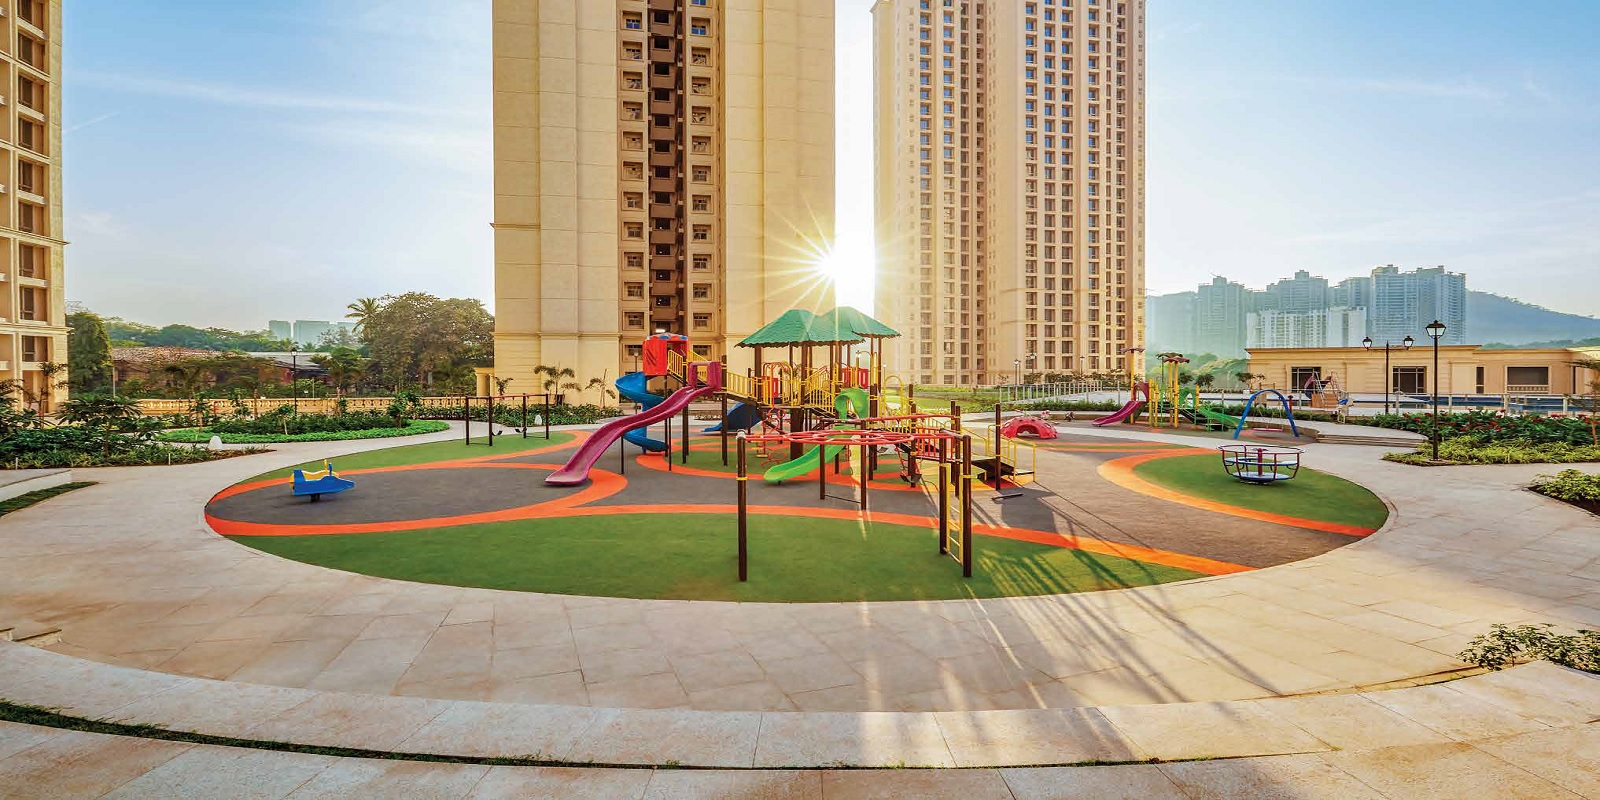 hiranandani park willow crest project amenities features2